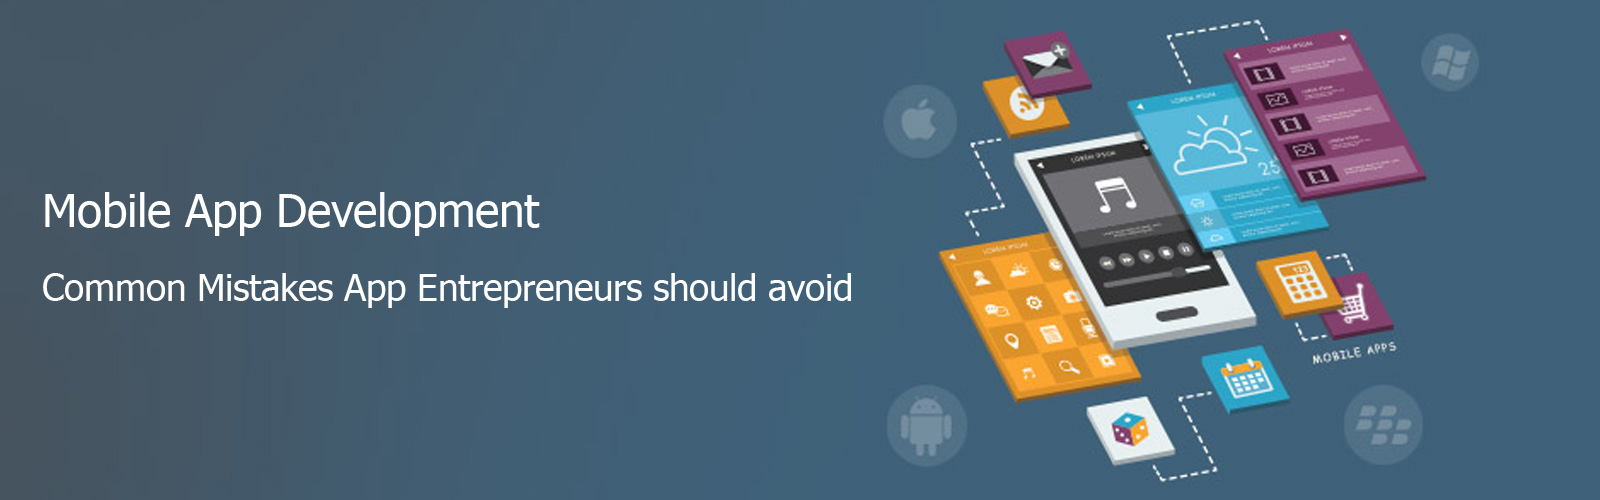 Mistakes App Entrepreneurs should avoid